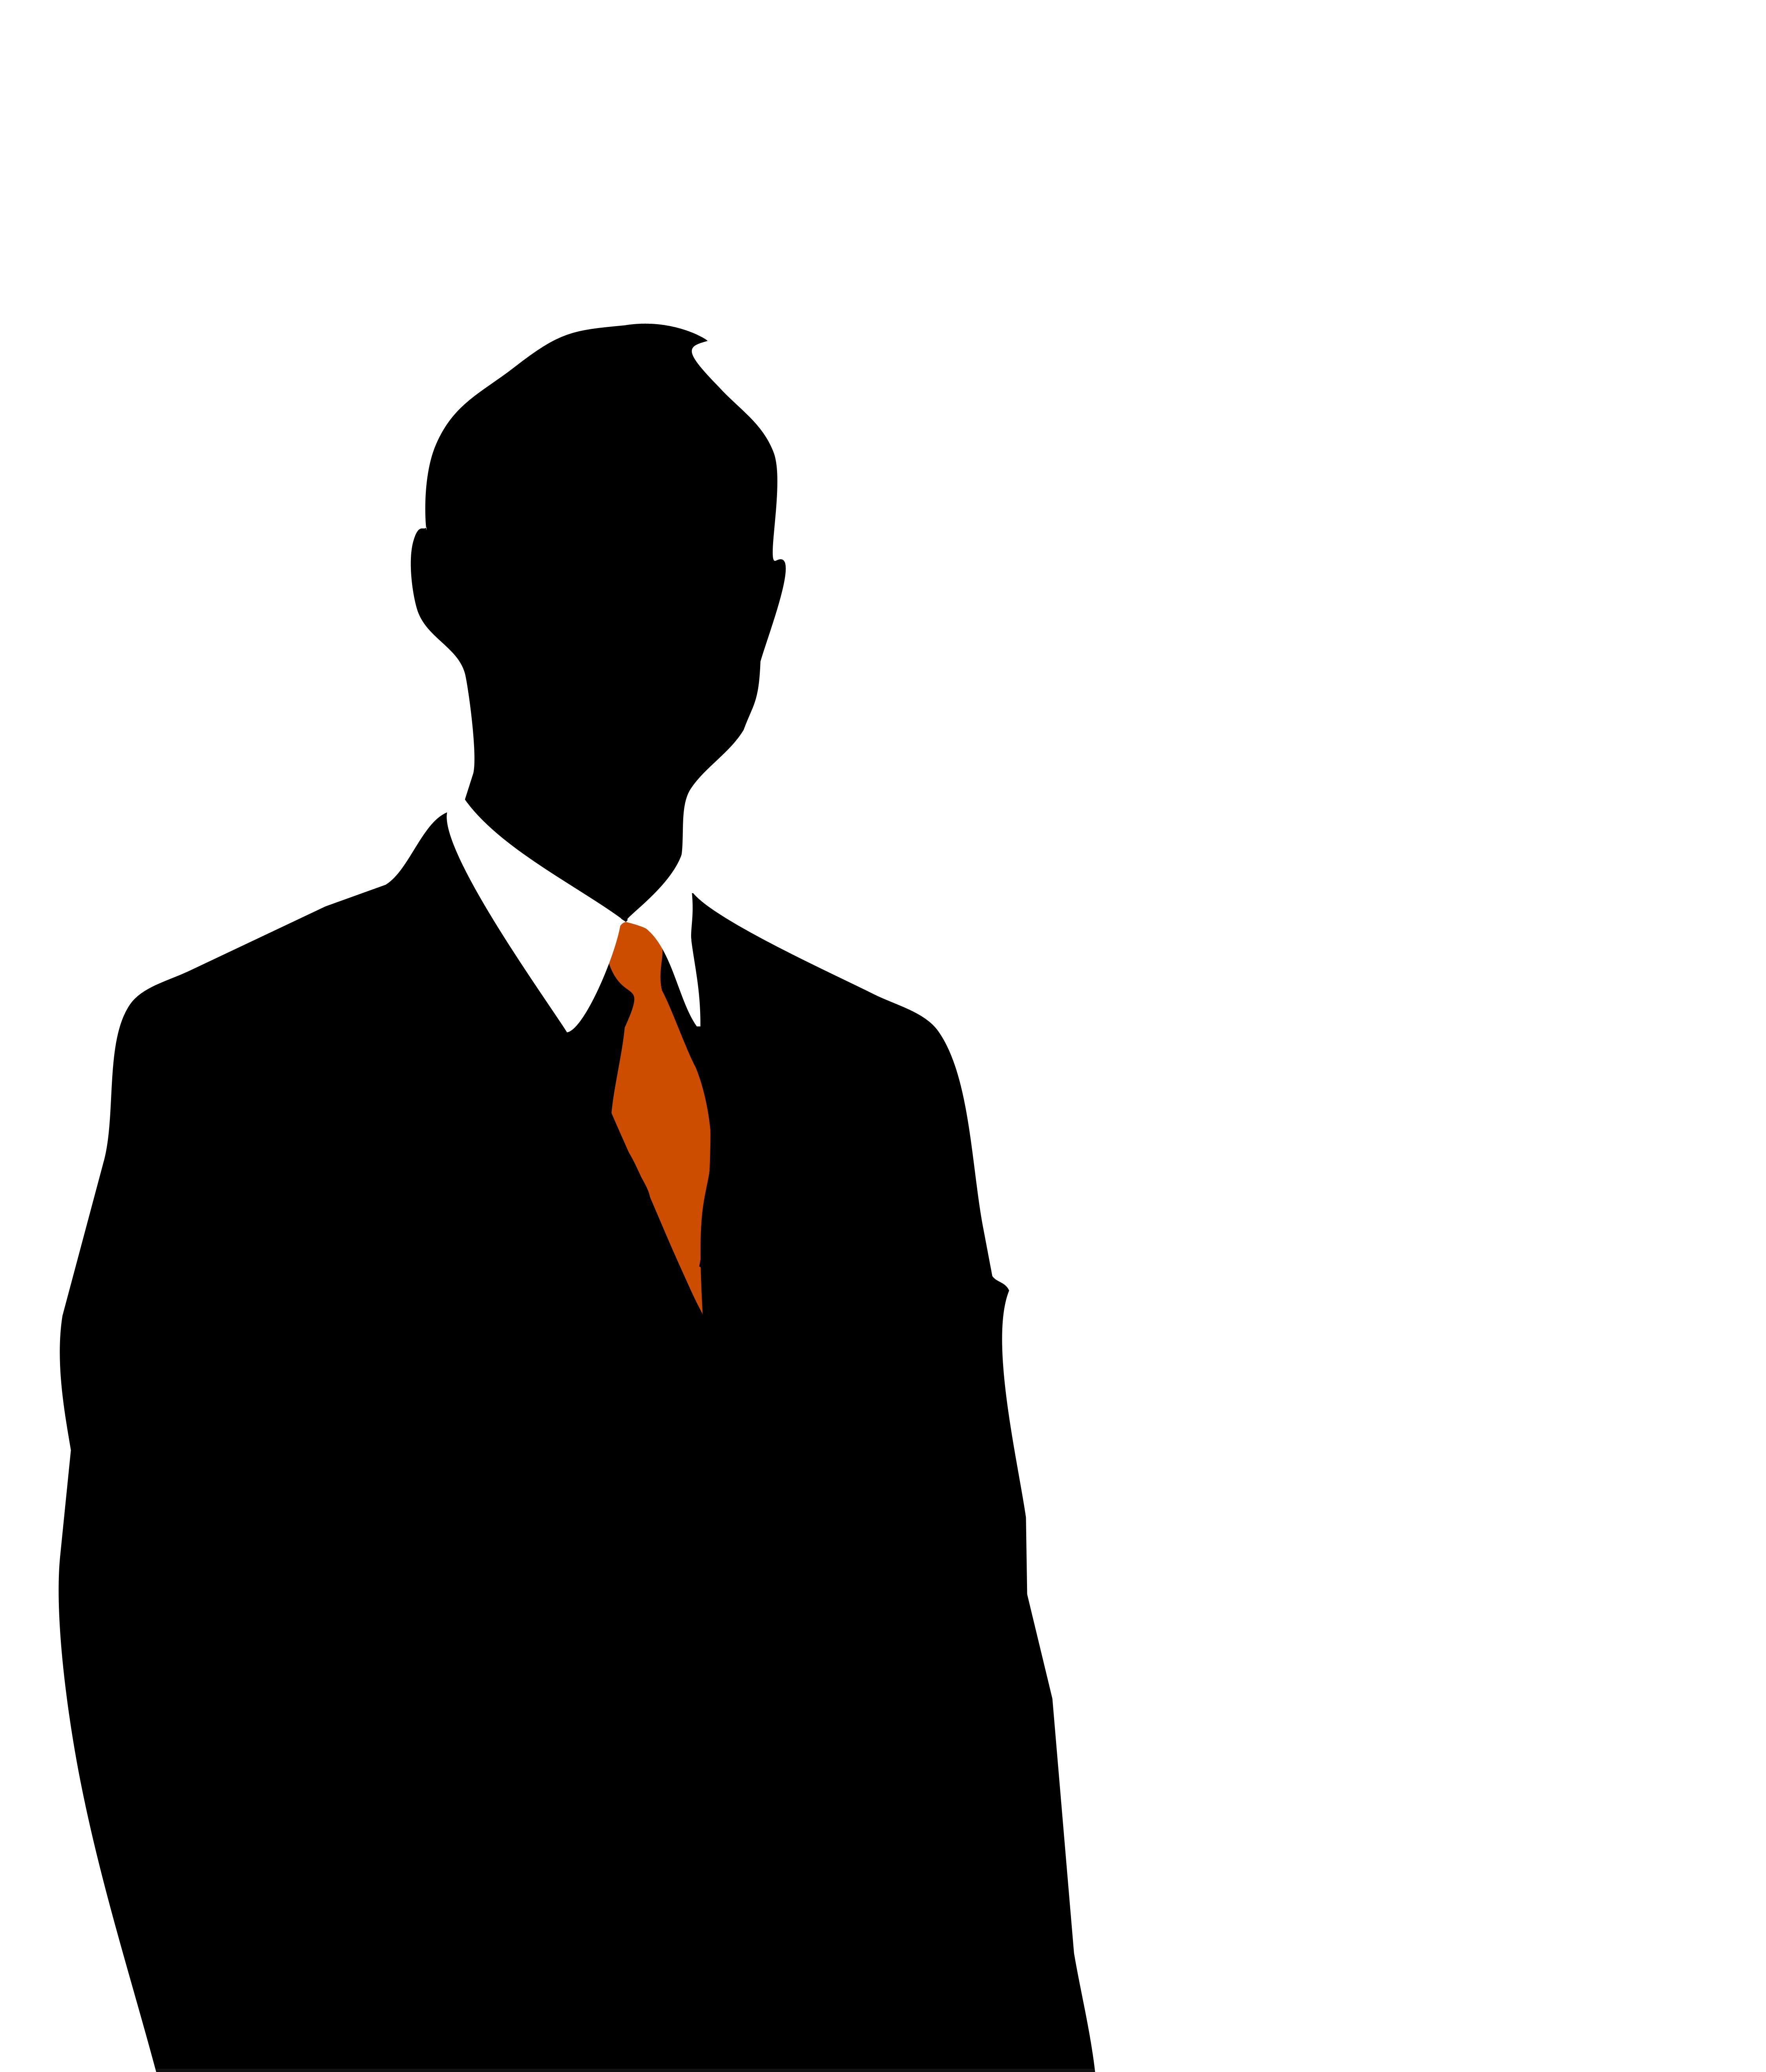 4500x5280 Best Hd Person Silhouette Clipart Generic Design